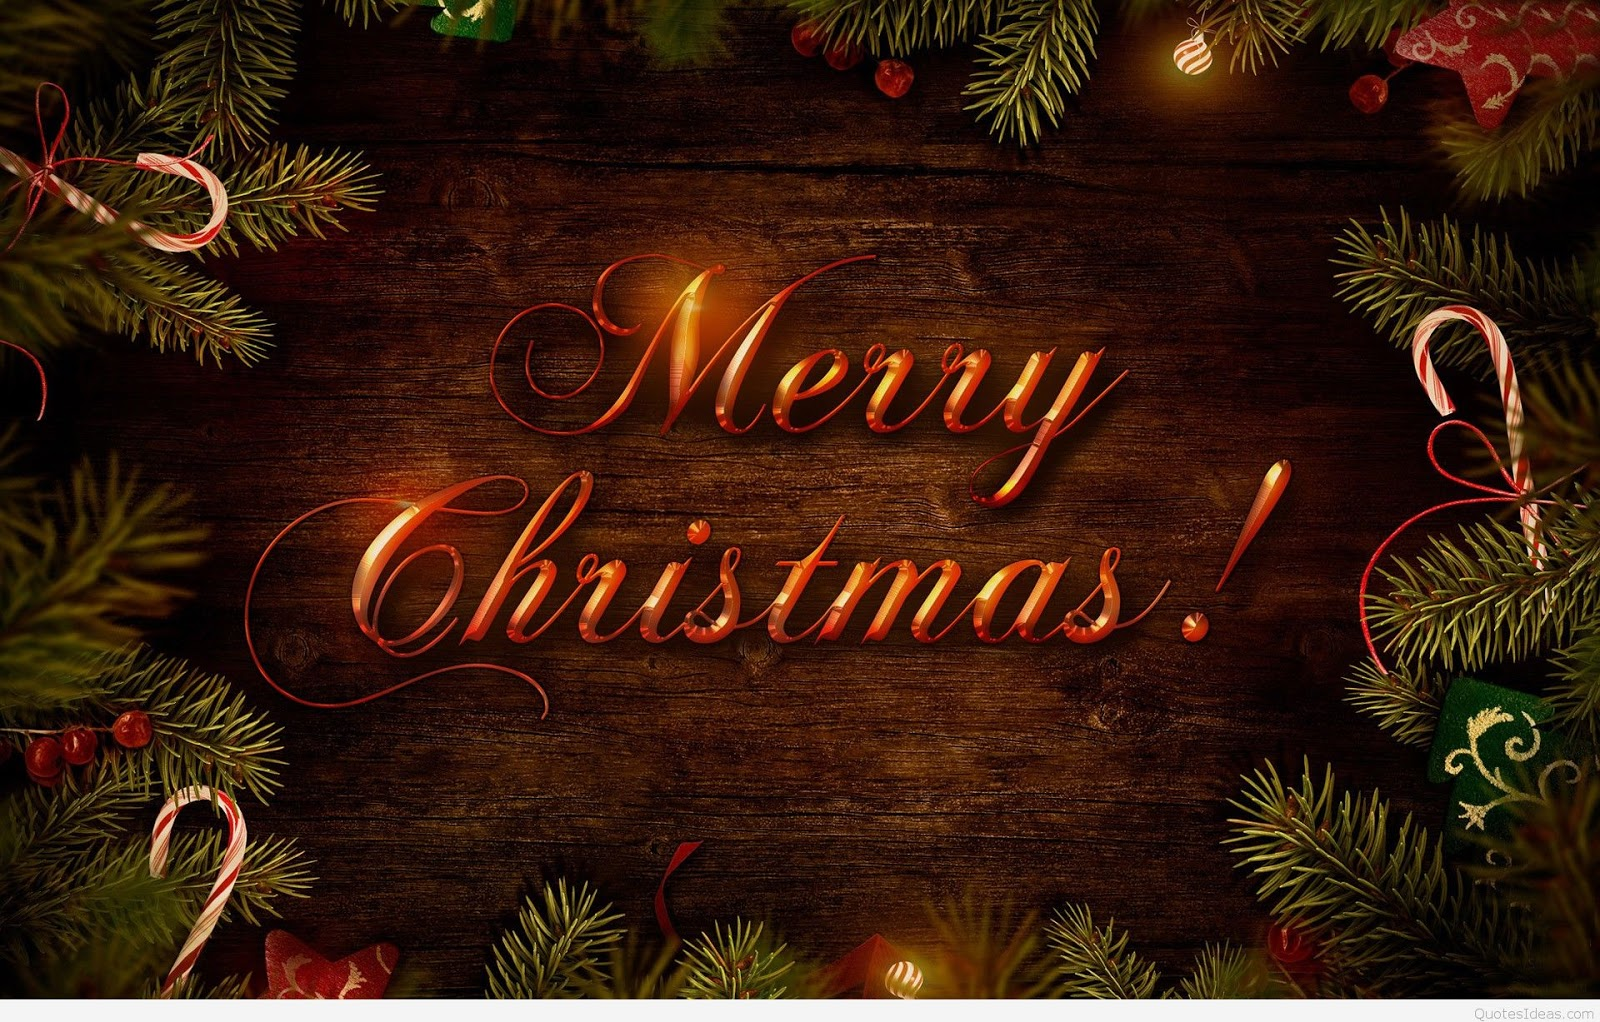 Merry Christmas Images Free Download 2018